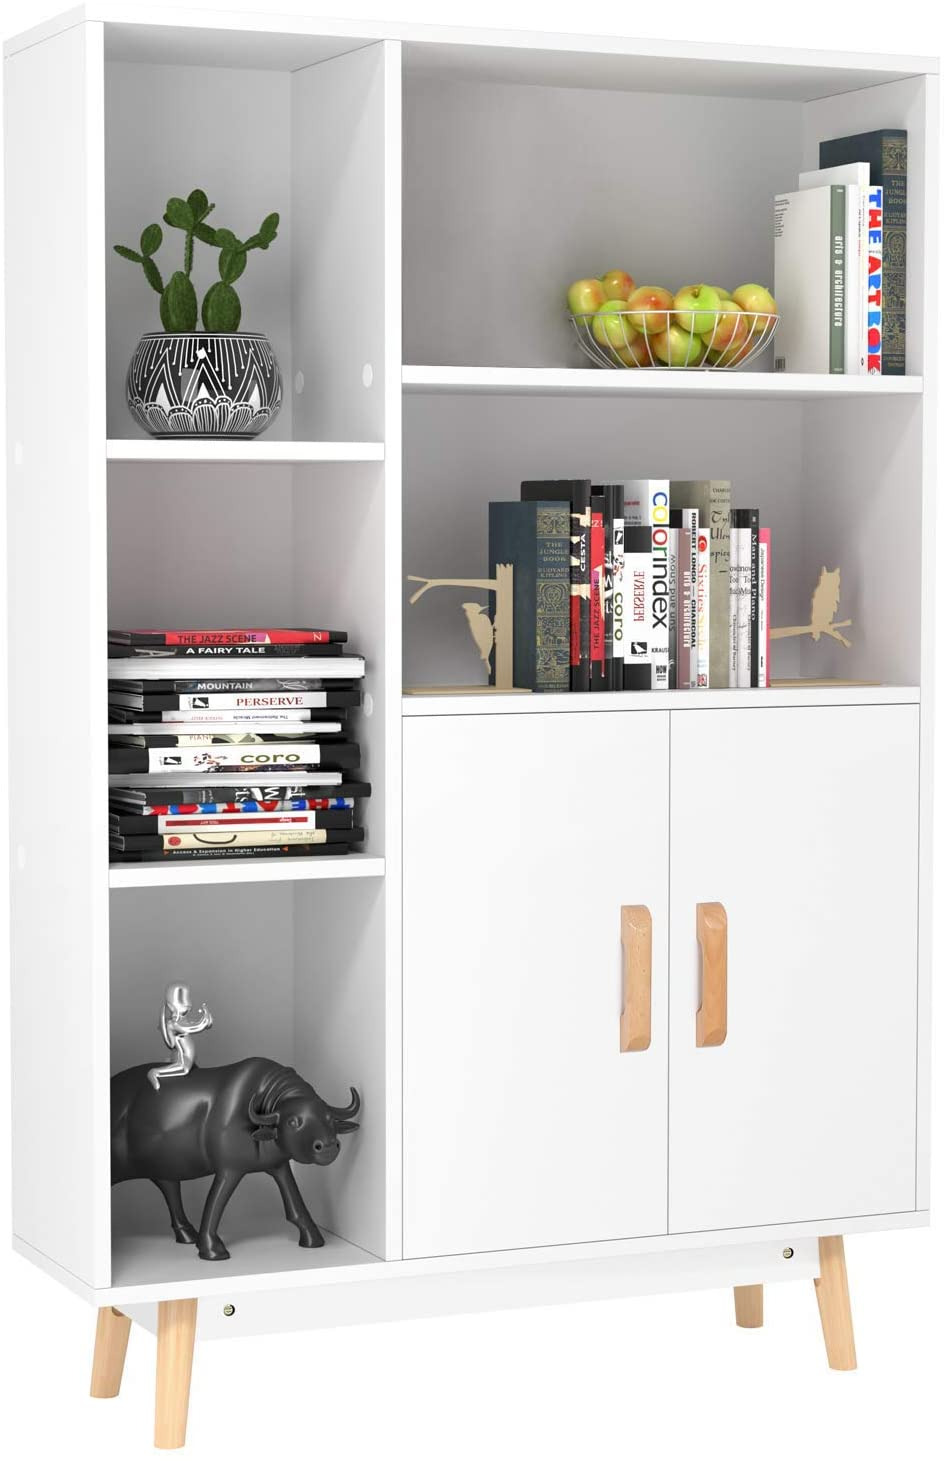 Wood Storage Cabinets with Doors and Shelves Awesome Homfa Floor Storage Cabinet Free Standing Wooden Display Bookcase with Double Doors 2 Shelves 3 Cubes and 4 Legs Side Cabinet Decor Furniture for